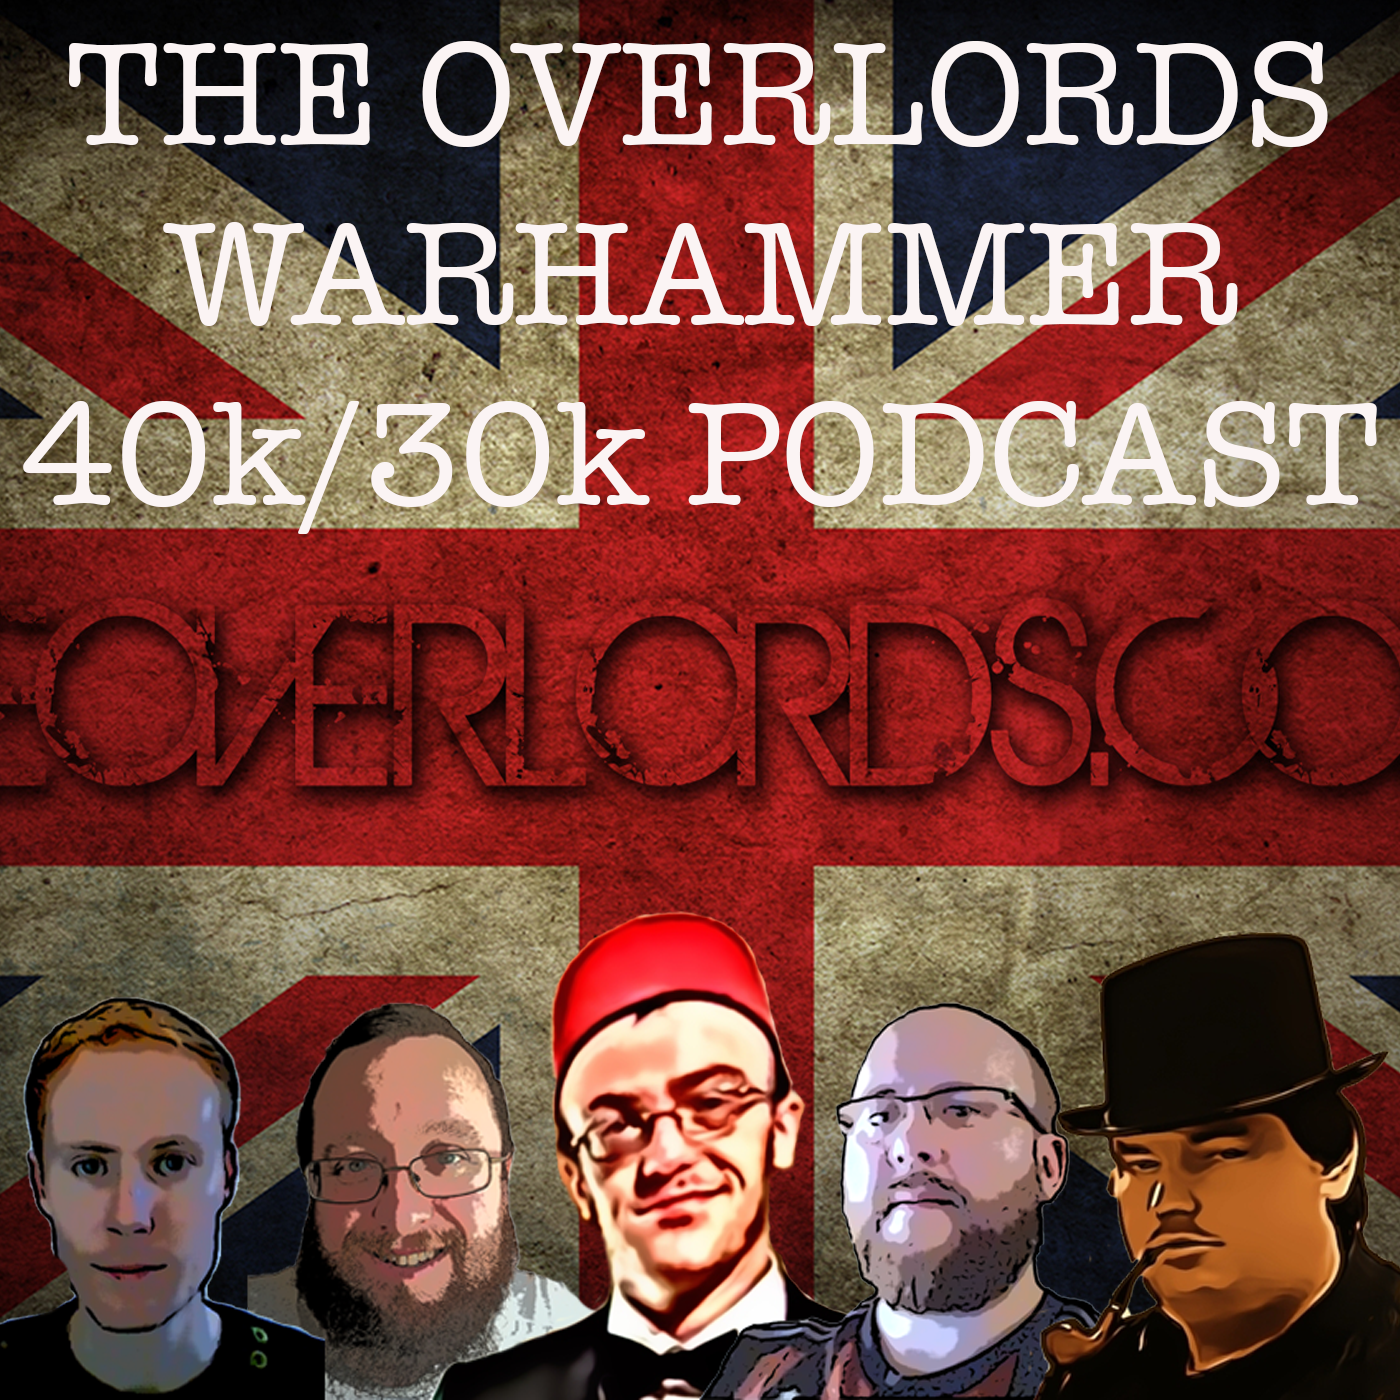 Artwork for Overlords_Podcast_Episode_1